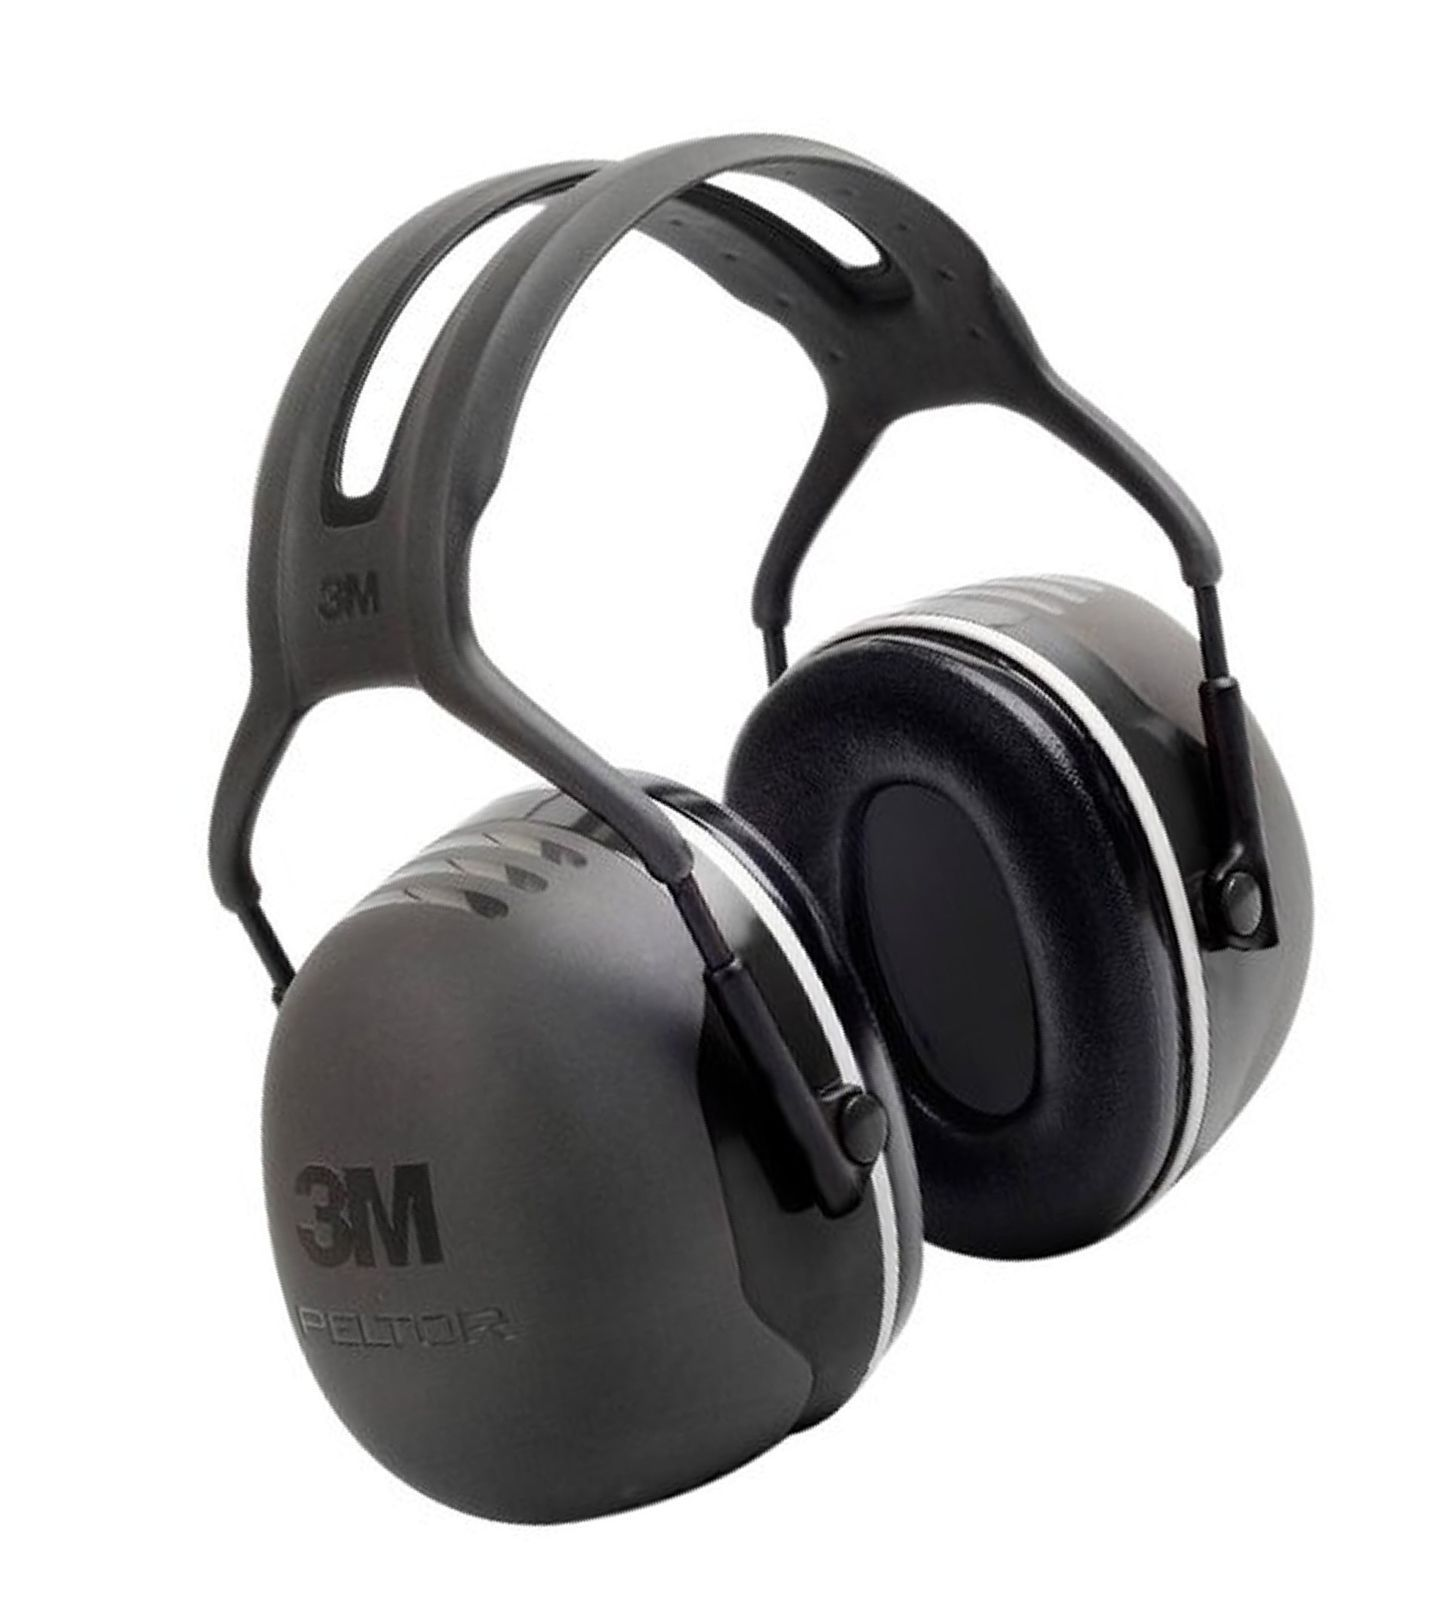 3M Peltor X-Series Over-the-Head Earmuffs, NRR 31 dB, One Size Fits Most, Bla...